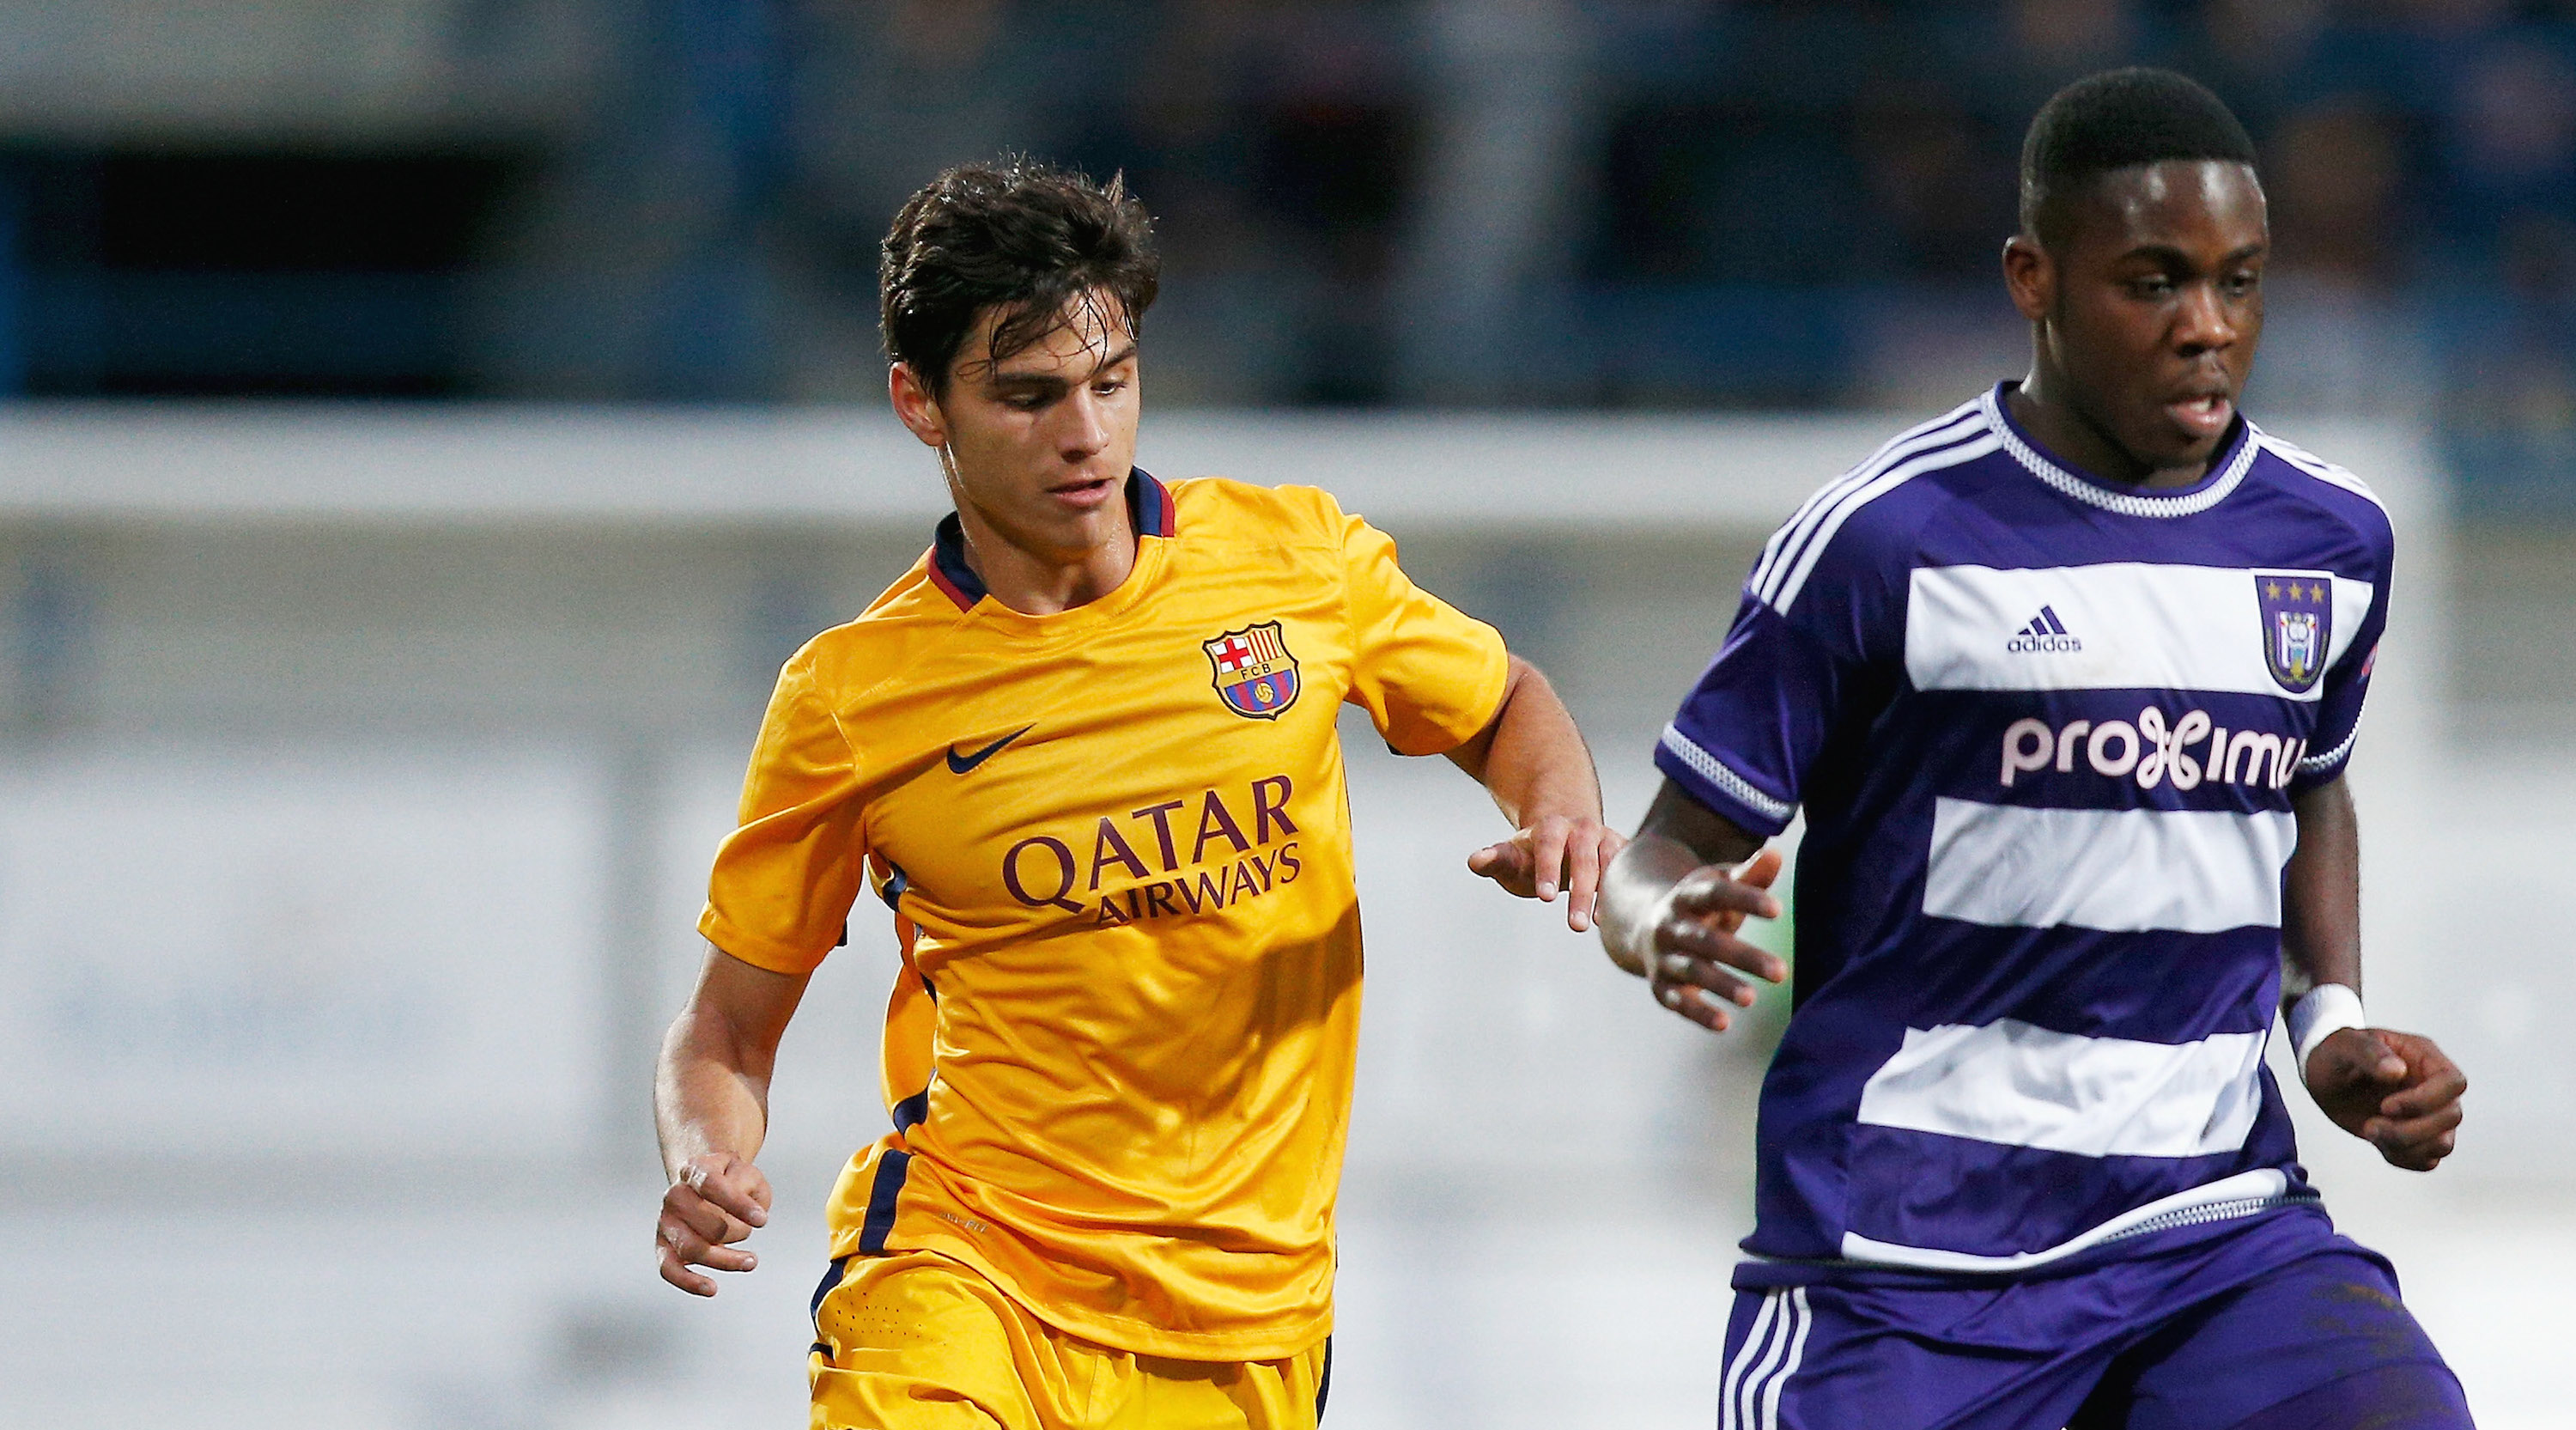 DENDERLEEUW, BELGIUM - MARCH 08: Orel Mangala of Anderlecht battles for the ball with Ferran Sarsanedas Soler of Barcelona during the UEFA Youth League Quarter-final match between Anderlecht and Barcelona held at Van Roy Stadium on March 8, 2016 in Denderleeuw, Belgium. (Photo by Dean Mouhtaropoulos/Getty Images)